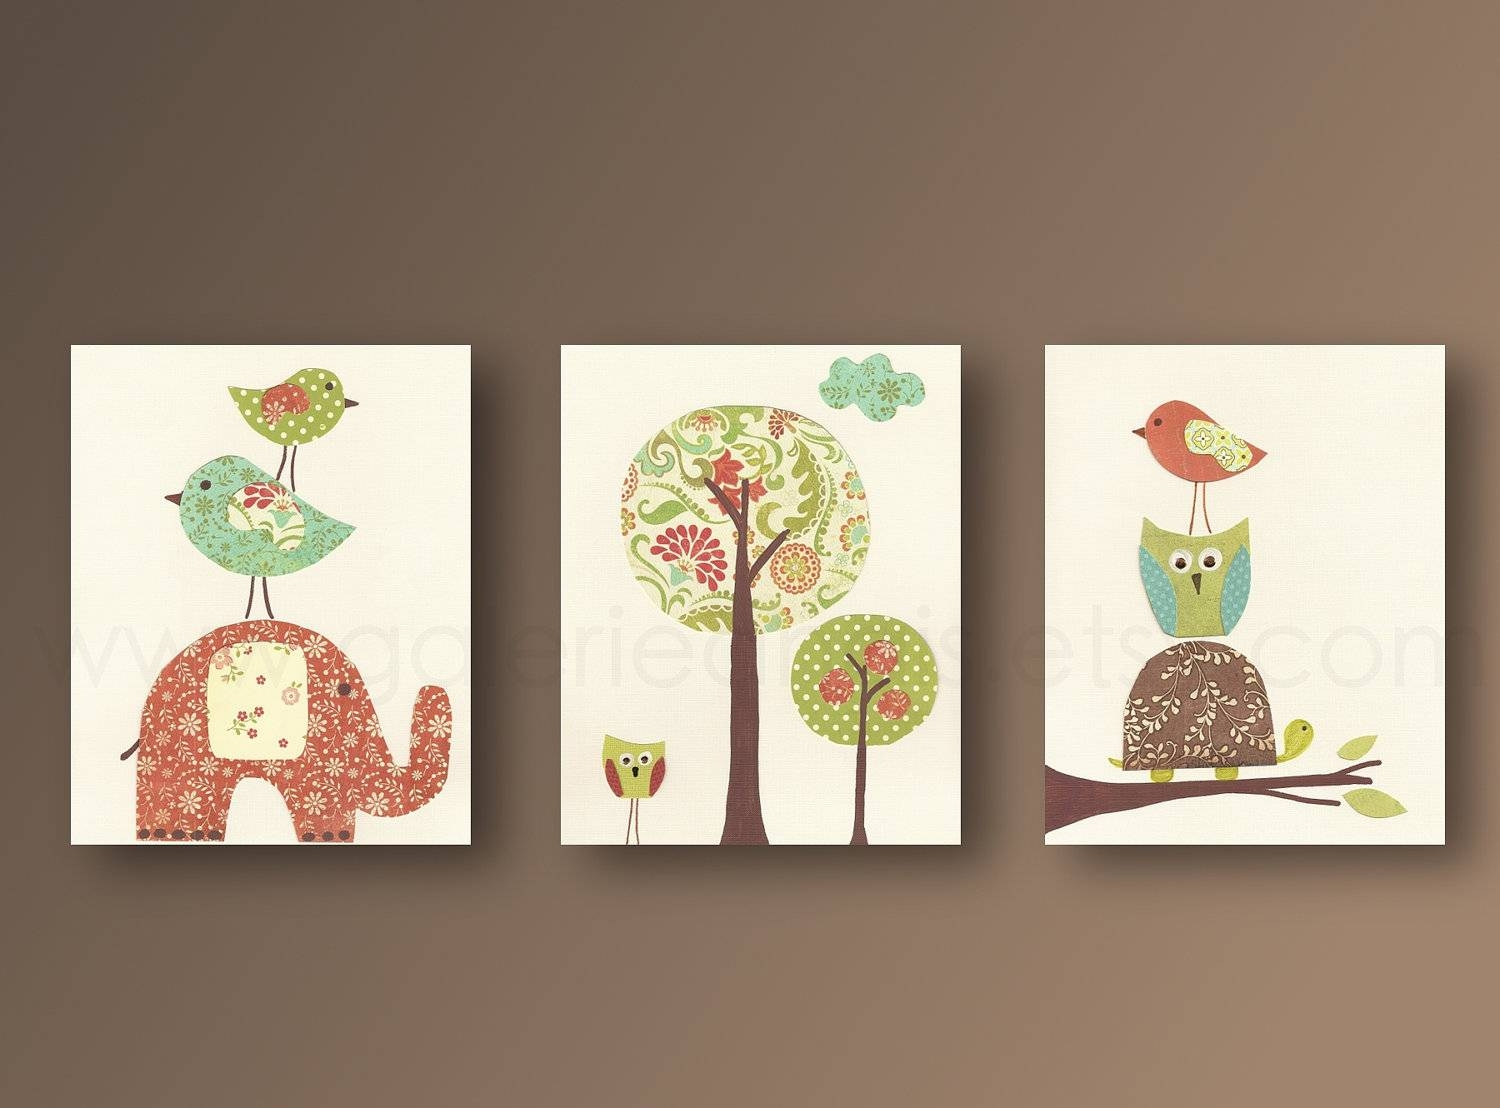 Nursery Wall Art Nursery Art Baby Nursery Kids Room Decor Owl In Most  Recent Canvas Prints